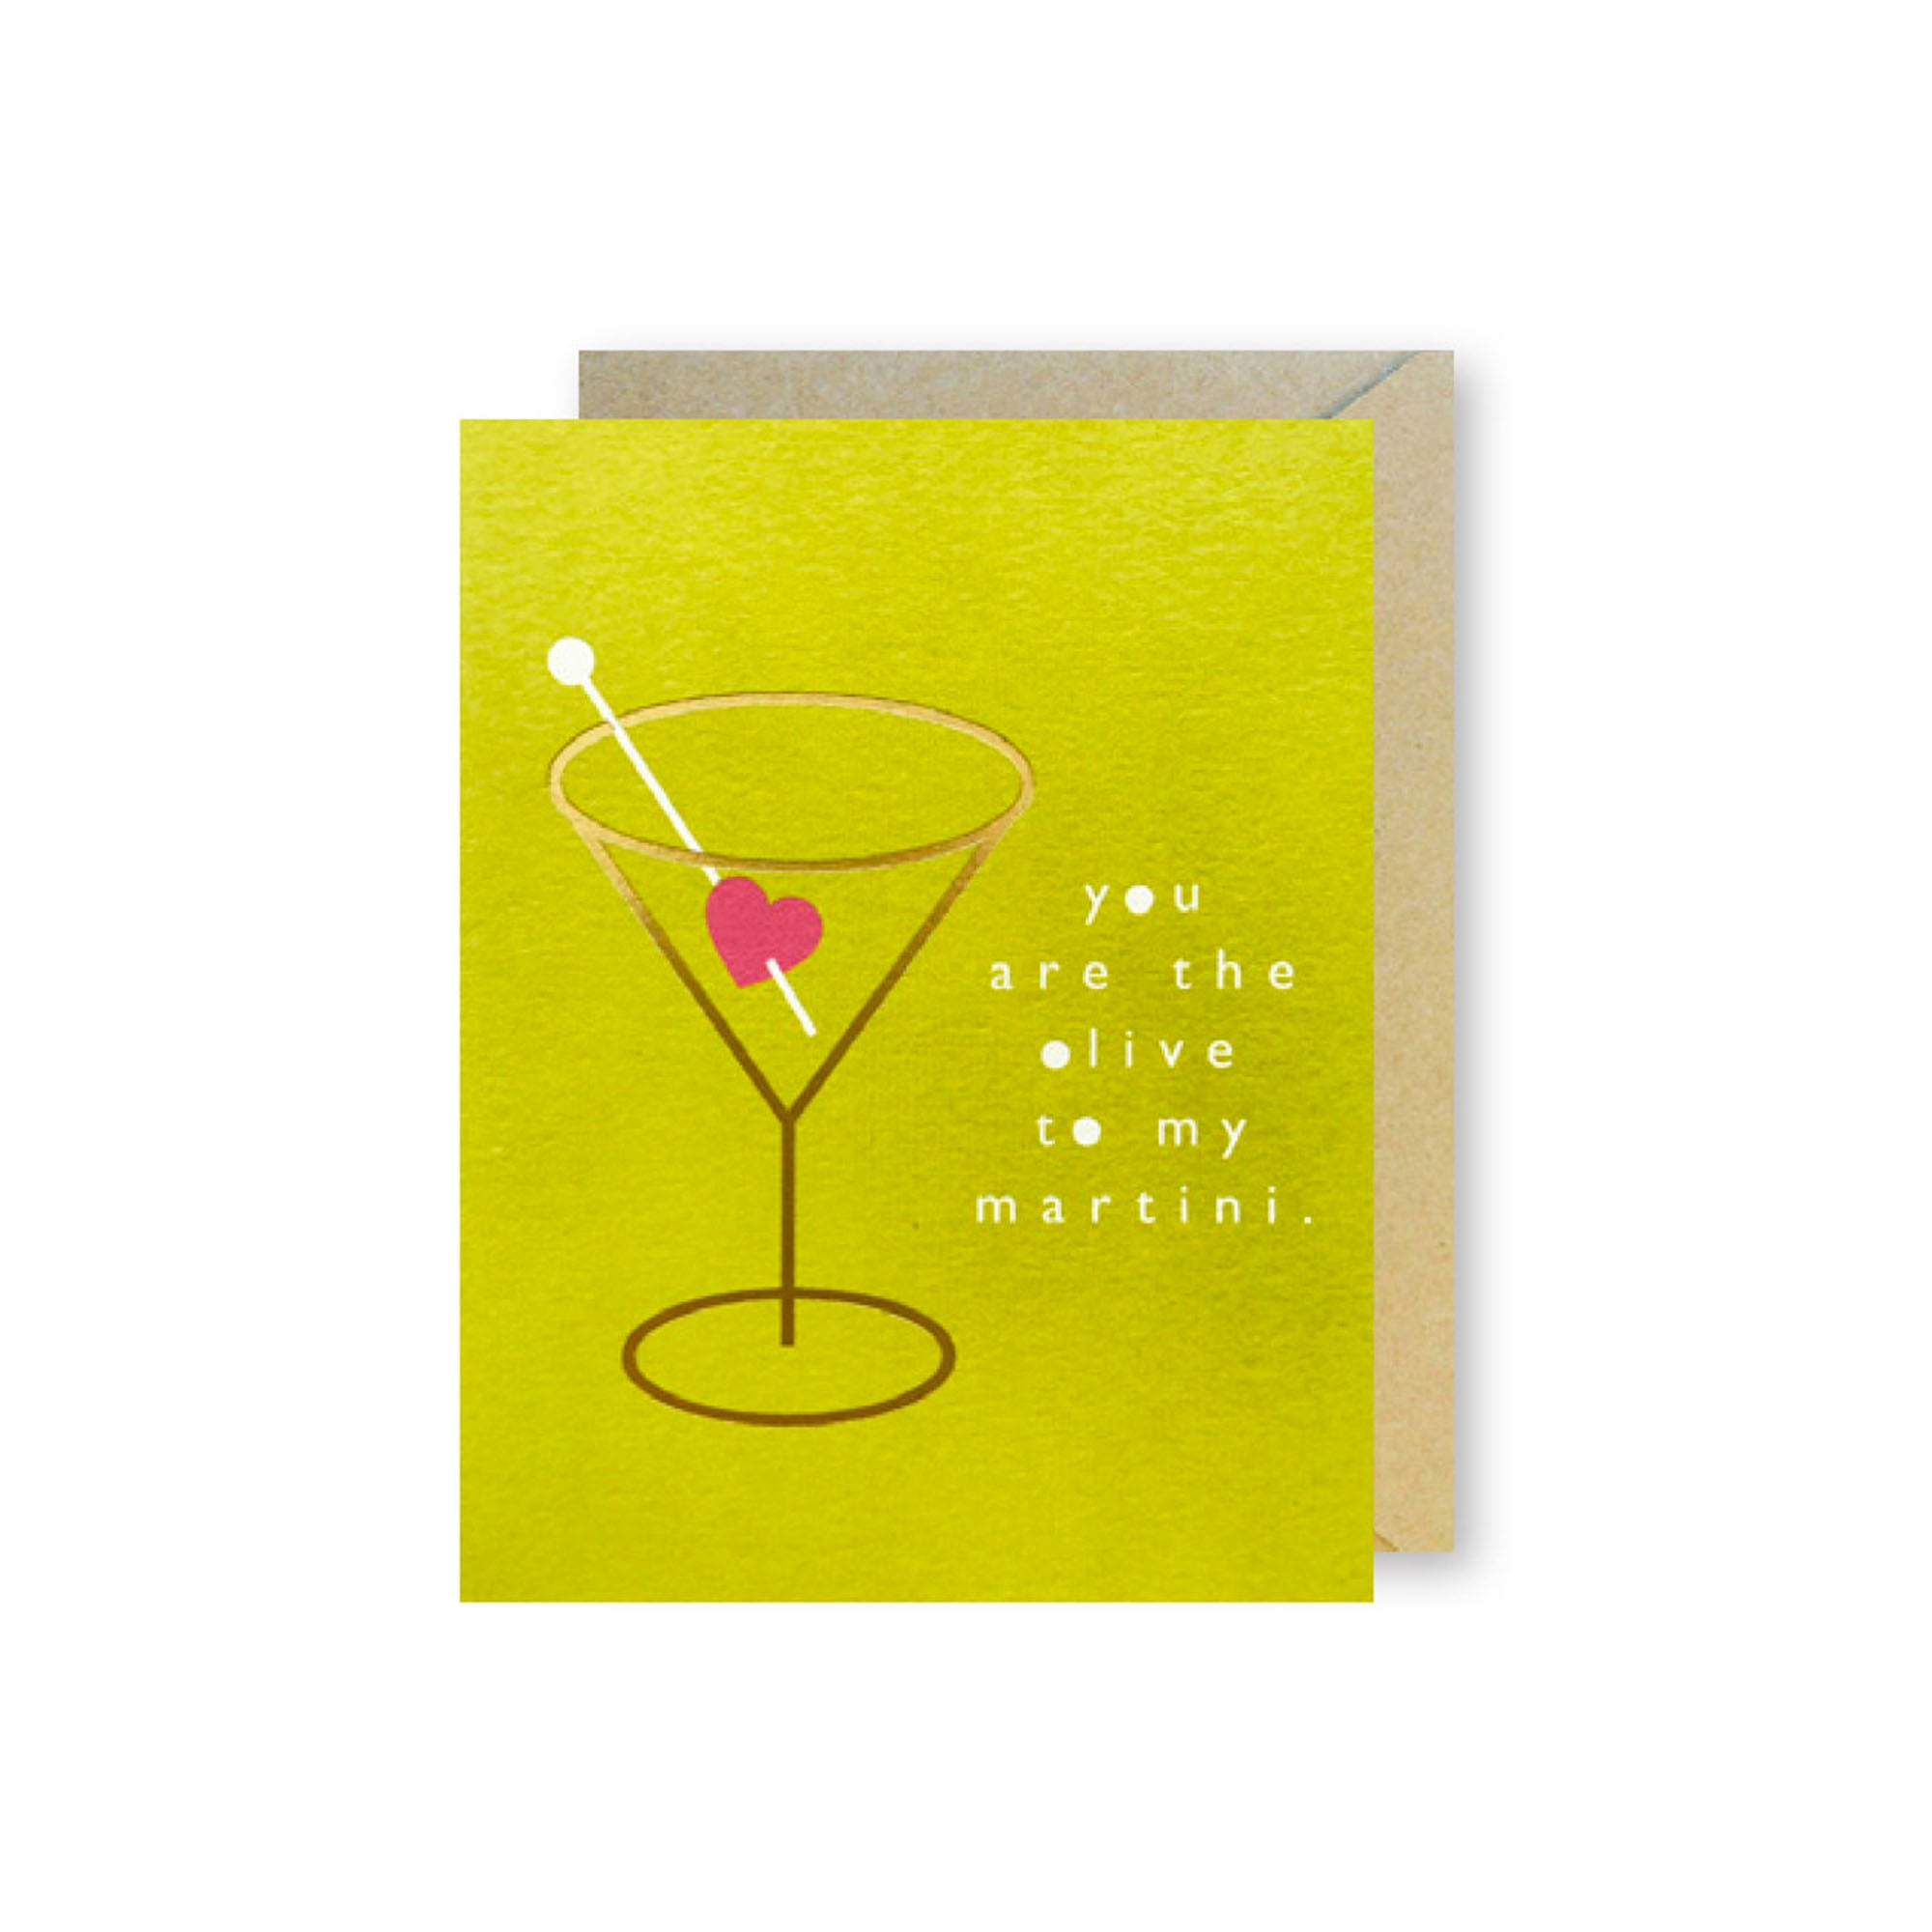 Martini Heart Card